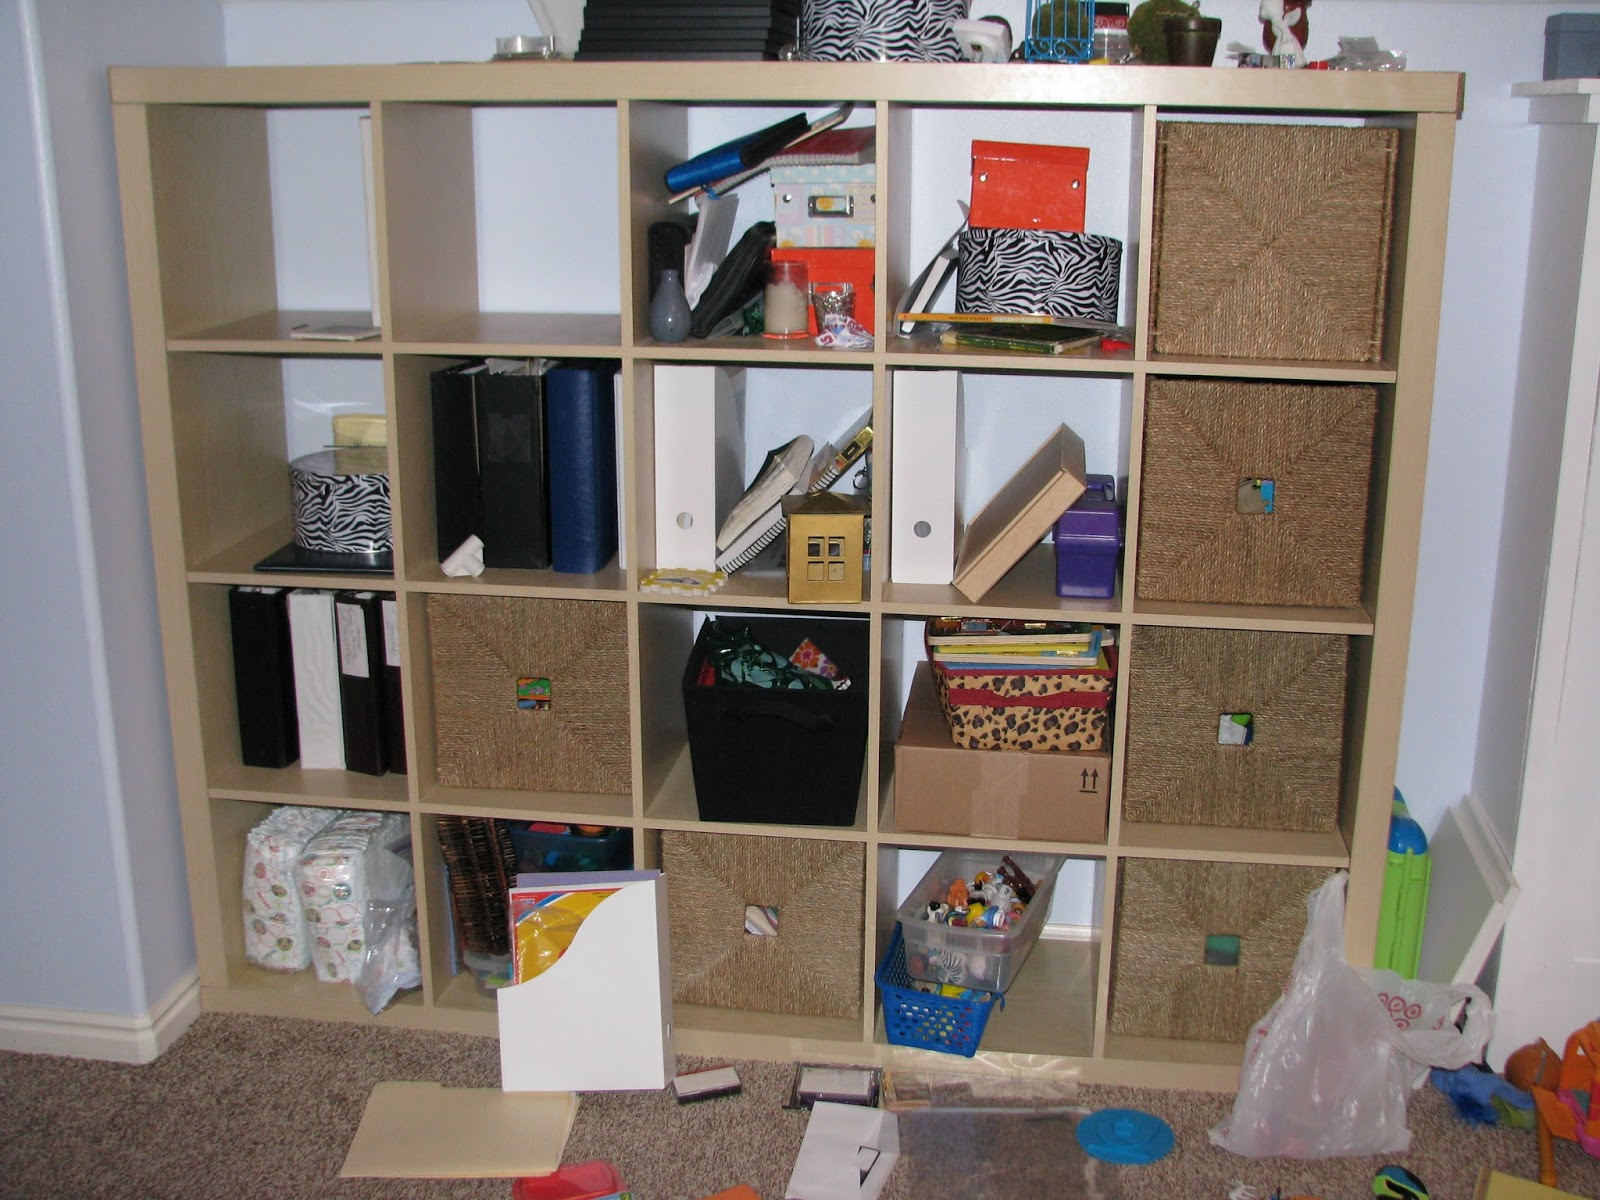 Genius Idea Ikea Expedit Shelves With Baskets For Storage: My So-Called DIY Blog: DIY Doors For IKEA Expedit Cubby Shelf